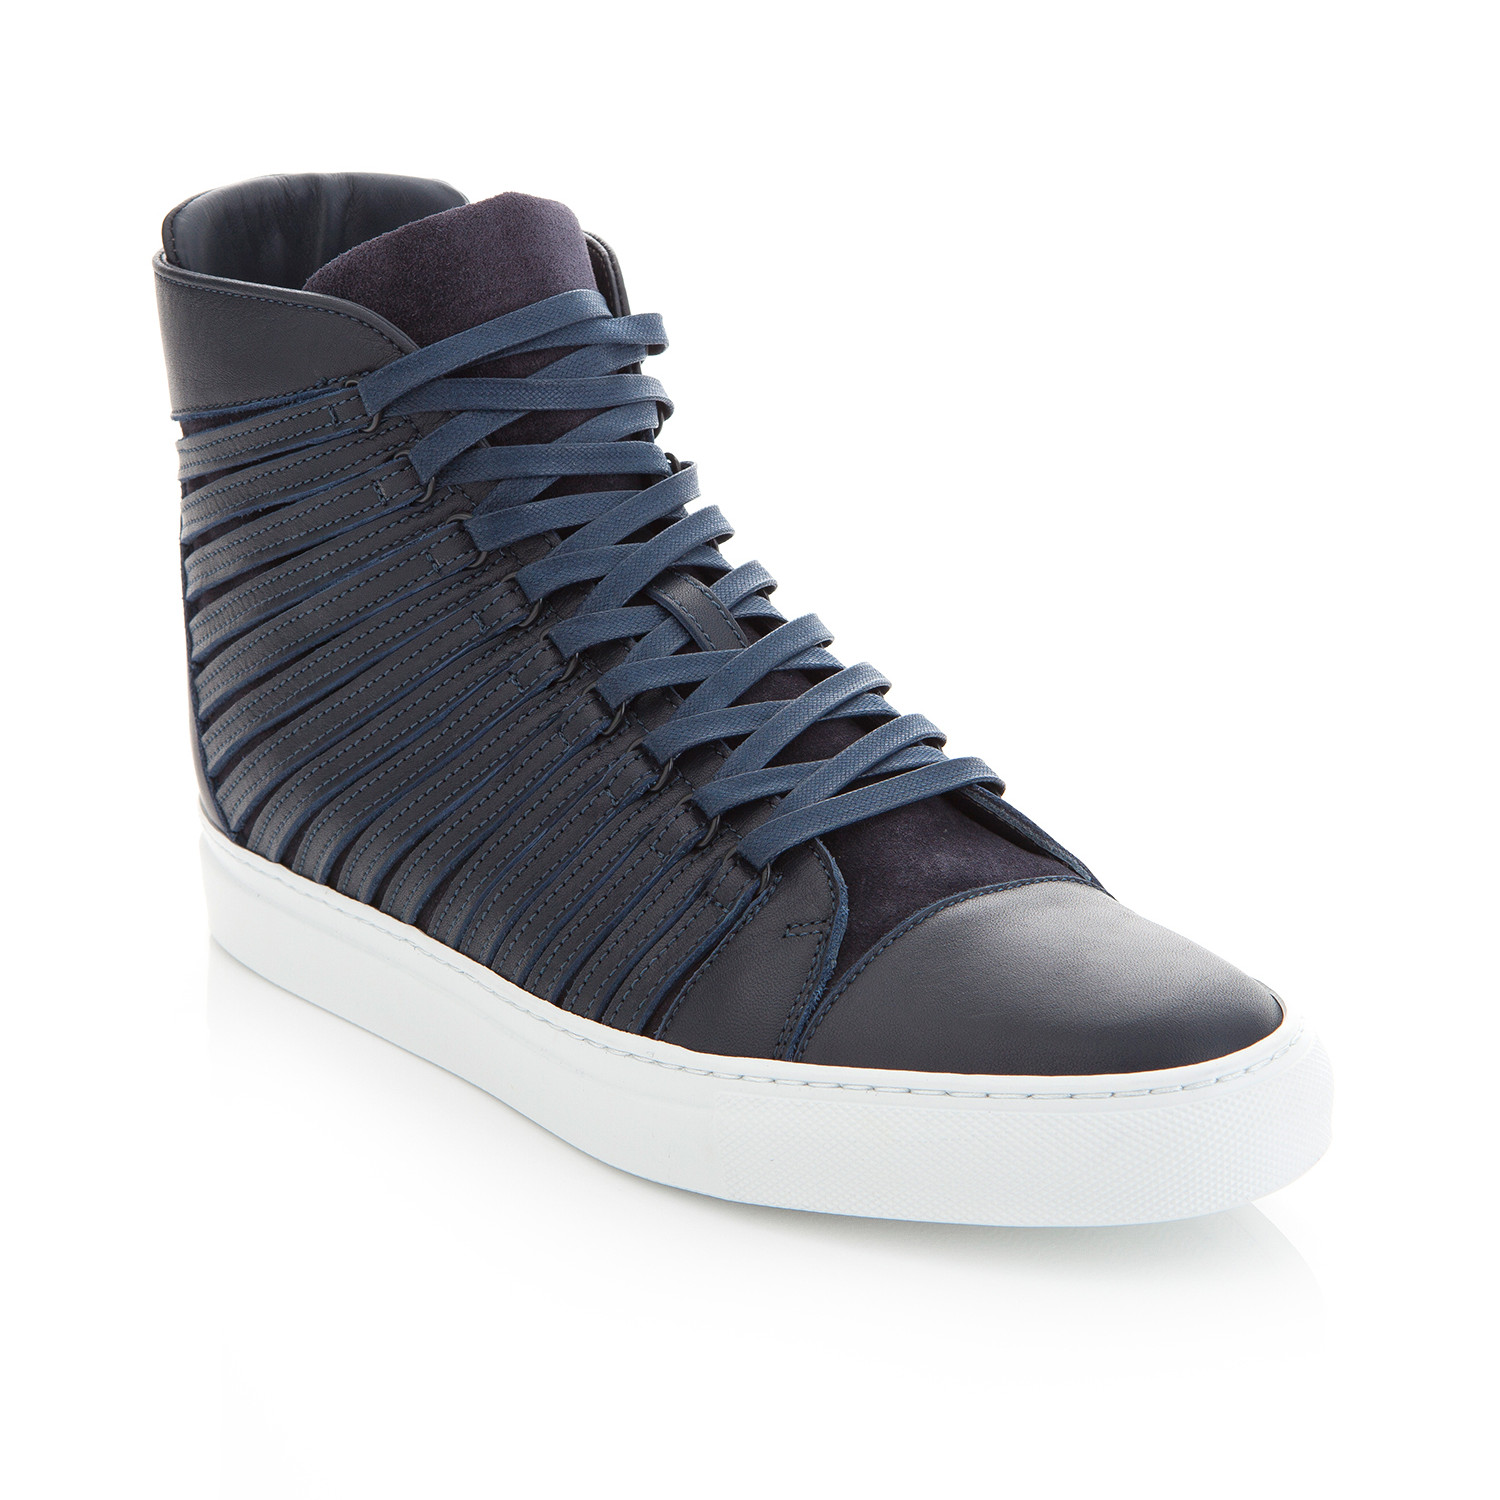 Cipher High Top Shoes